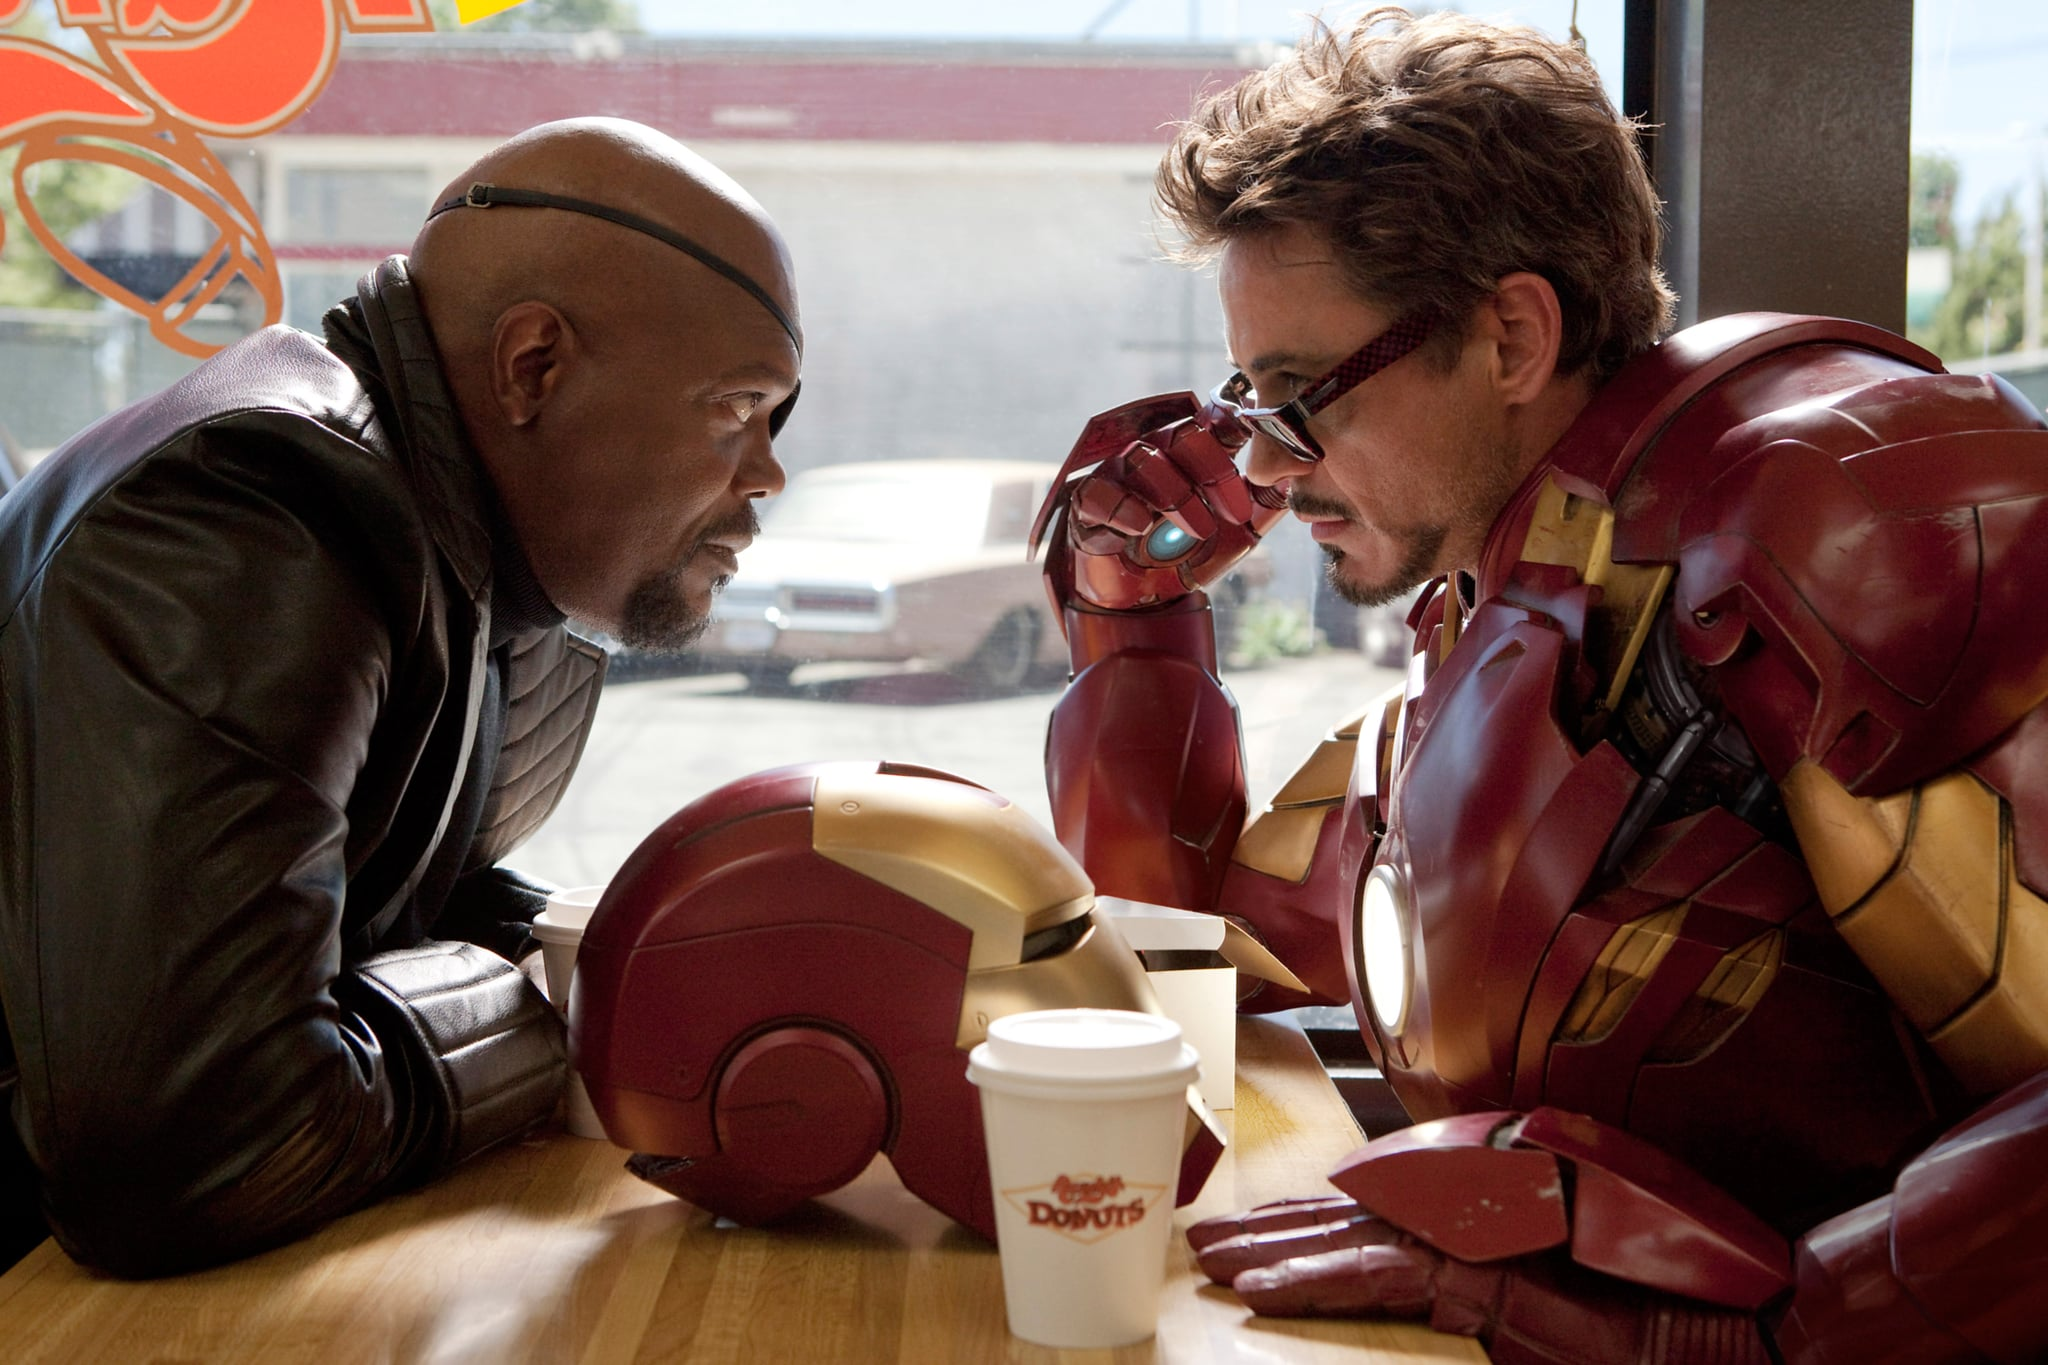 IRON MAN 2, from left: Samuel L. Jackson, Robert Downey Jr., 2010. ph: Francois Duhamel/Paramount/Courtesy Everett Collection